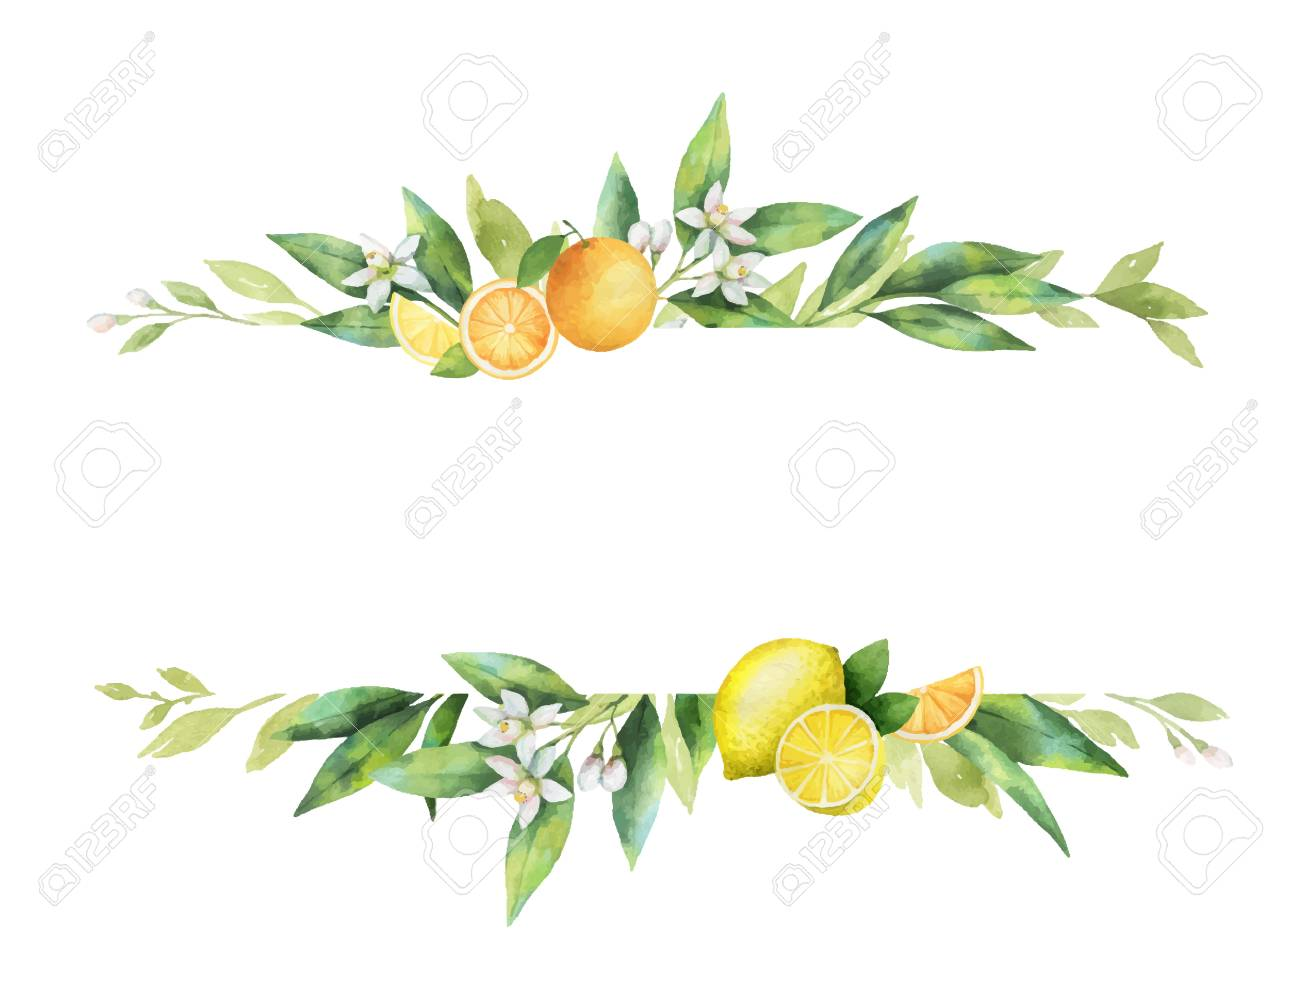 Watercolor vector banner of citrus fruits and leaves. - 101978250